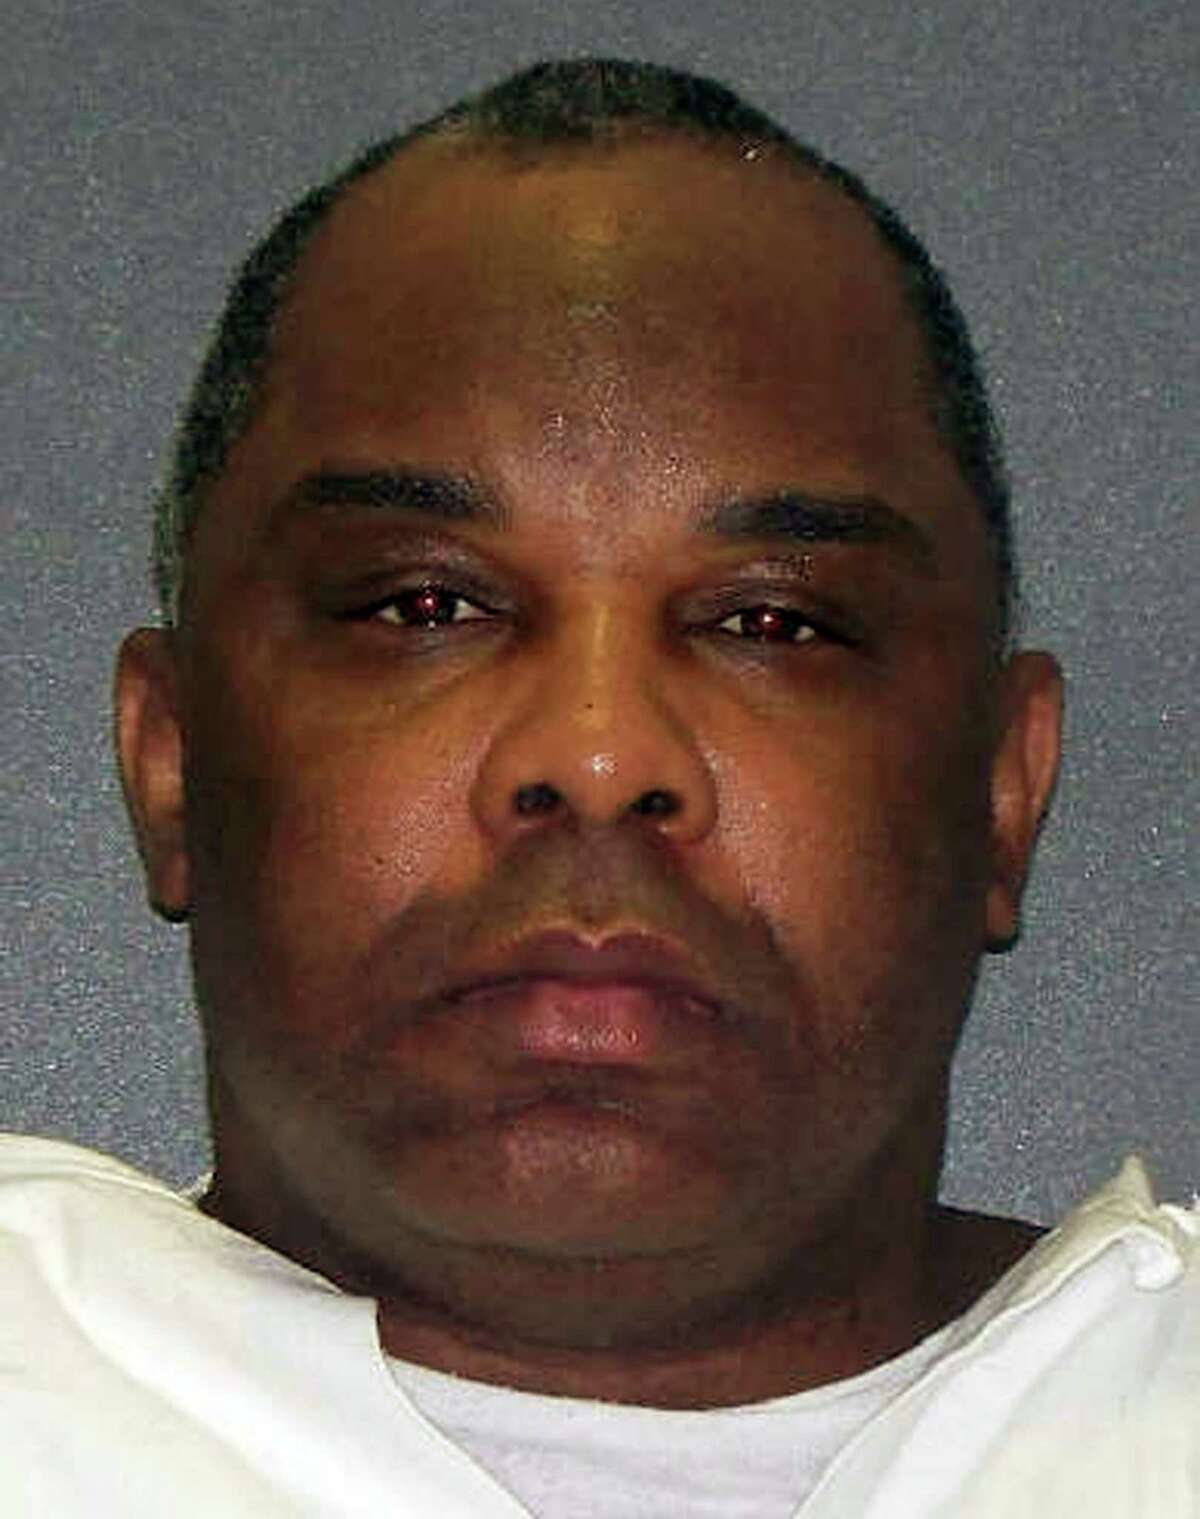 Jonathan Green convicted in the June 2000 slaying of a 12-year-old girl in Montgomery County, north of Houston. He survived an execution date in 2010 when Texas's highest criminal court granted a hearing on whether he was too mentally ill to be put to death.. (AP Photo/Texas Department of Criminal Justice)